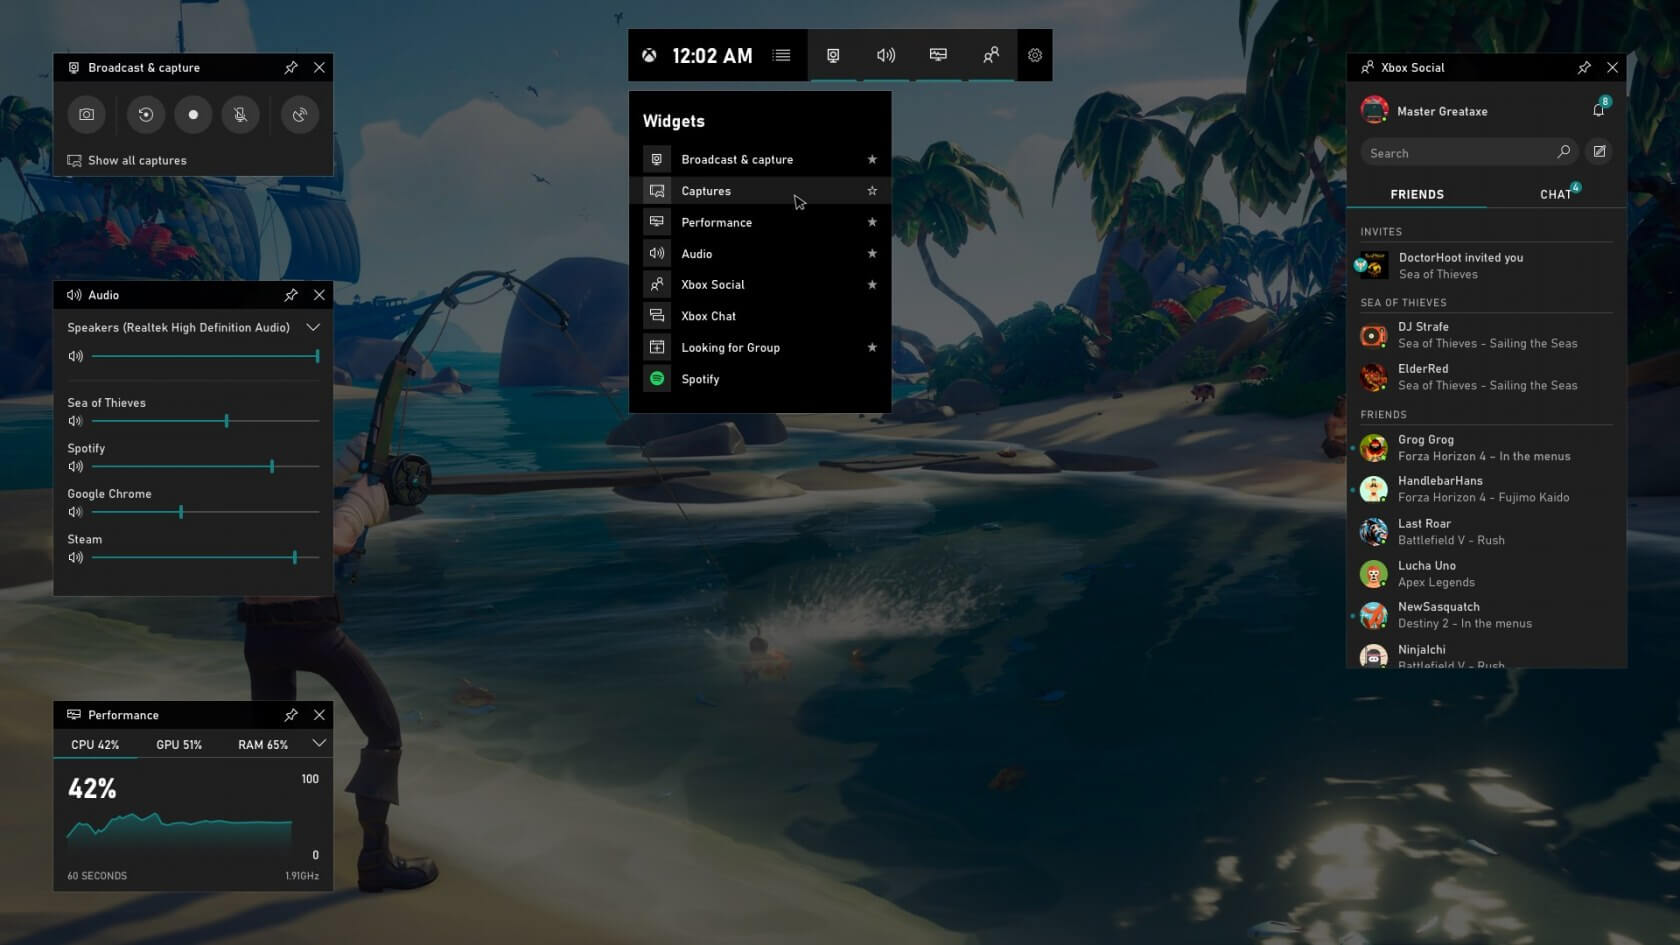 Windows 10 game bar gains a frame rate counter and achievement overlay